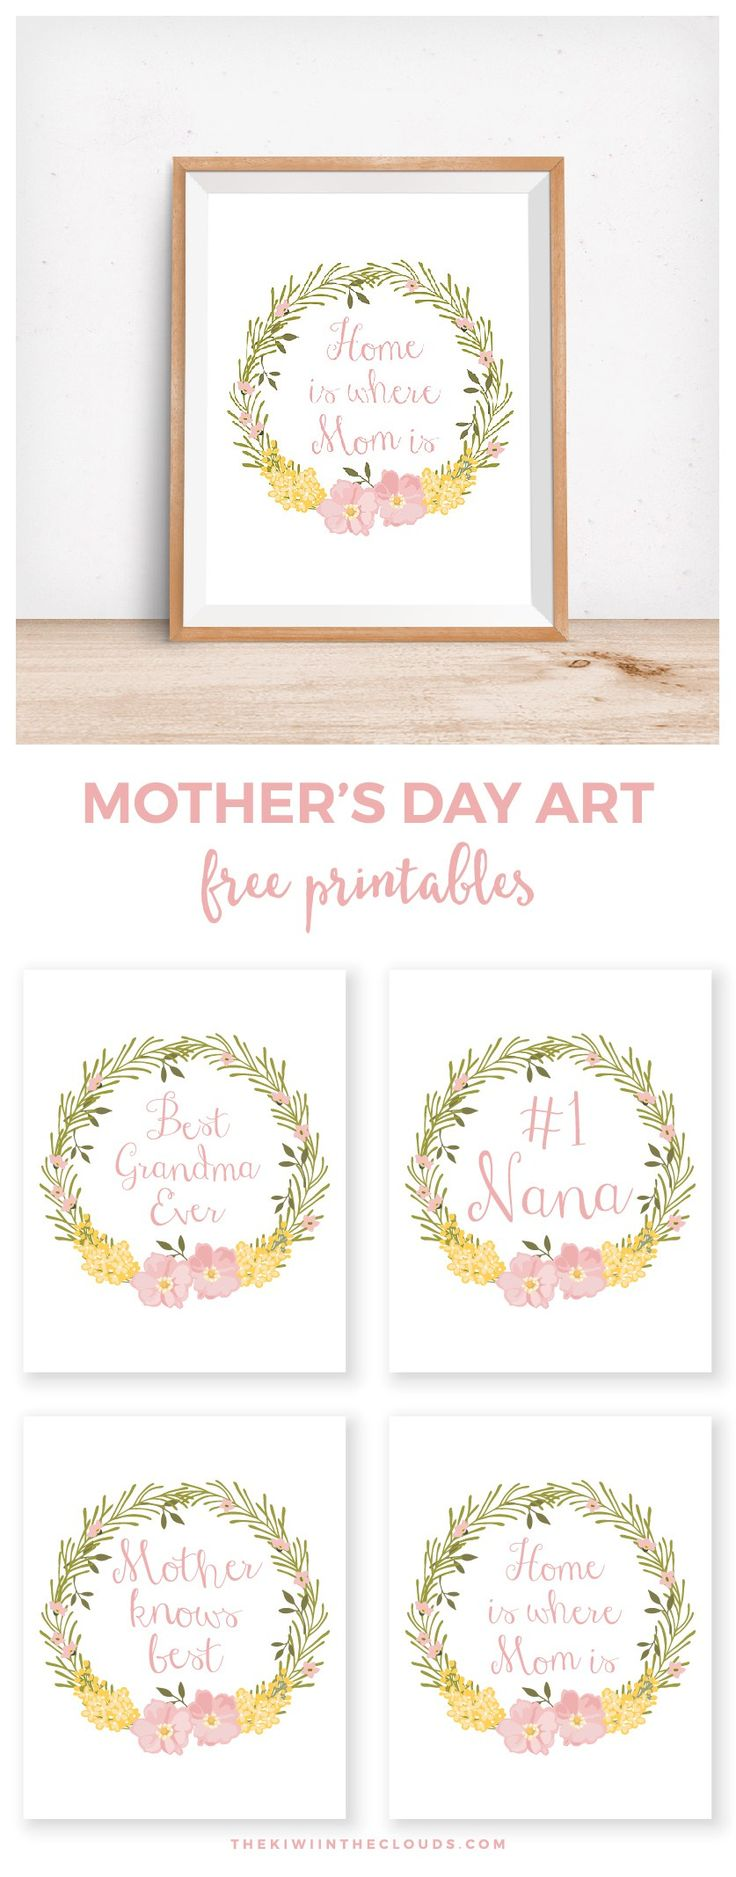 Mother's Day Free Printables | Click through to download 4 FREE 8x10 mother's day prints for mom, grandma and nana!